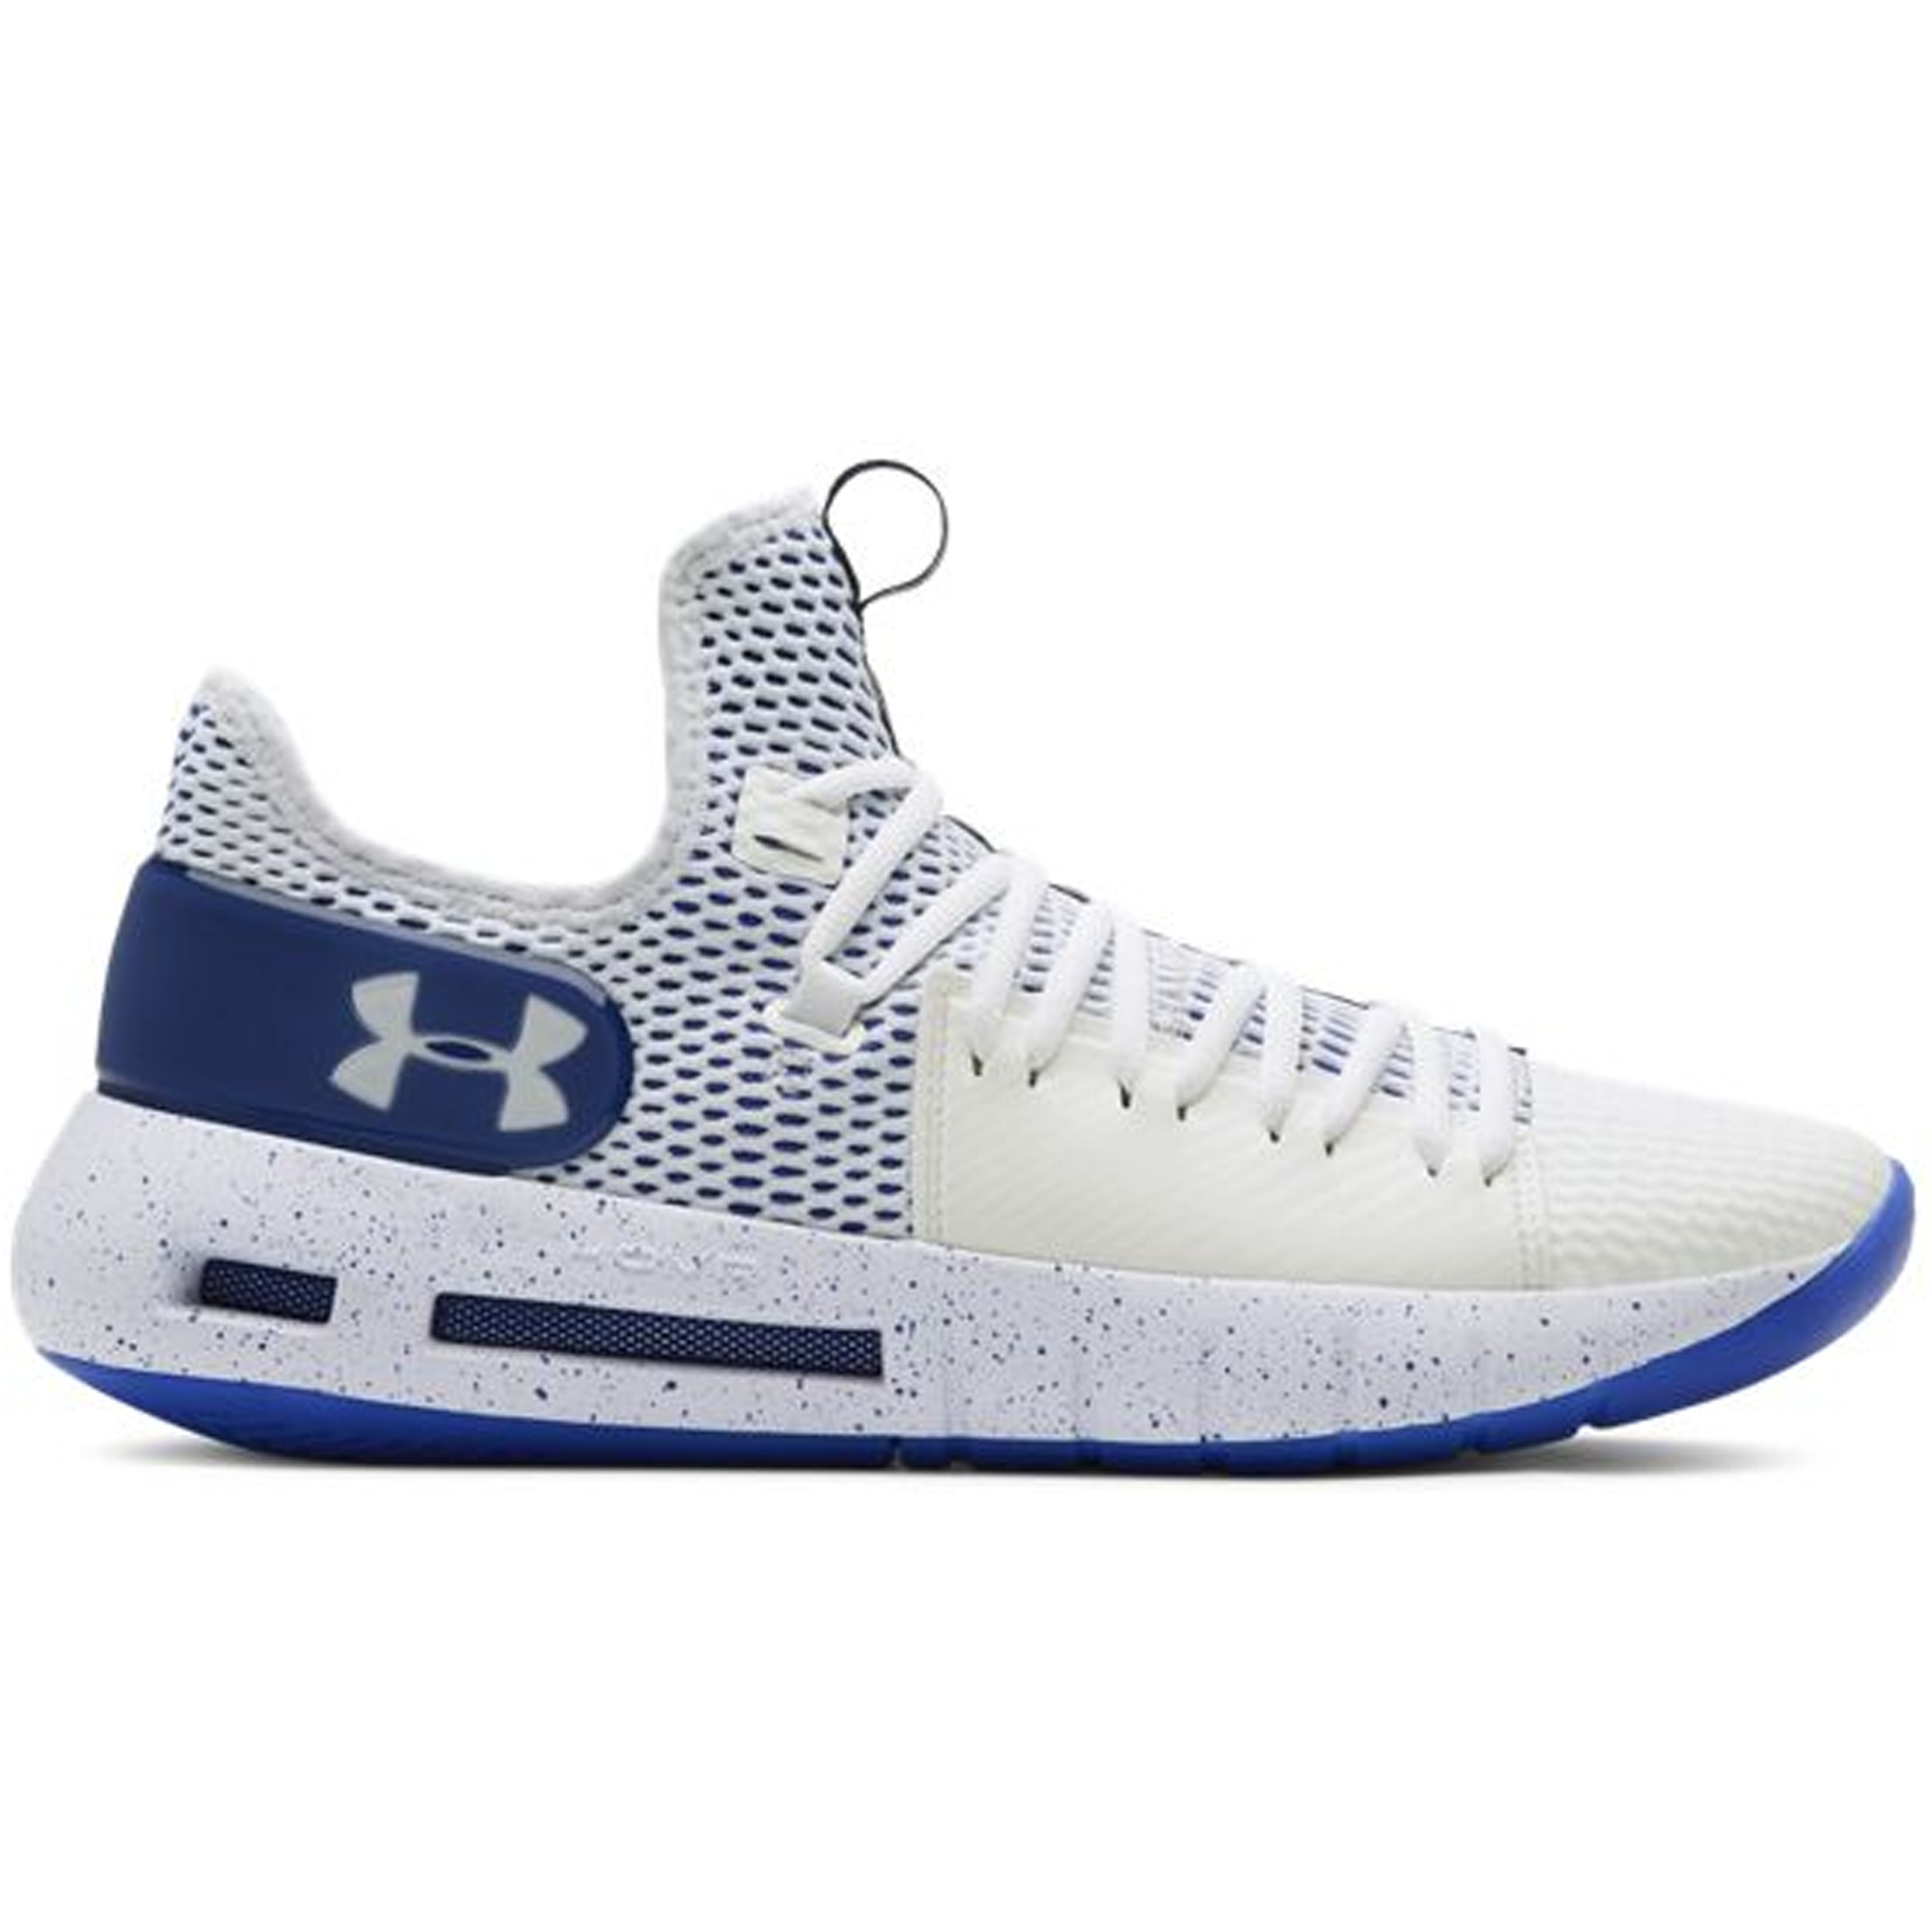 Under Armour Hovr Havoc Low White Blue (3021593-108)